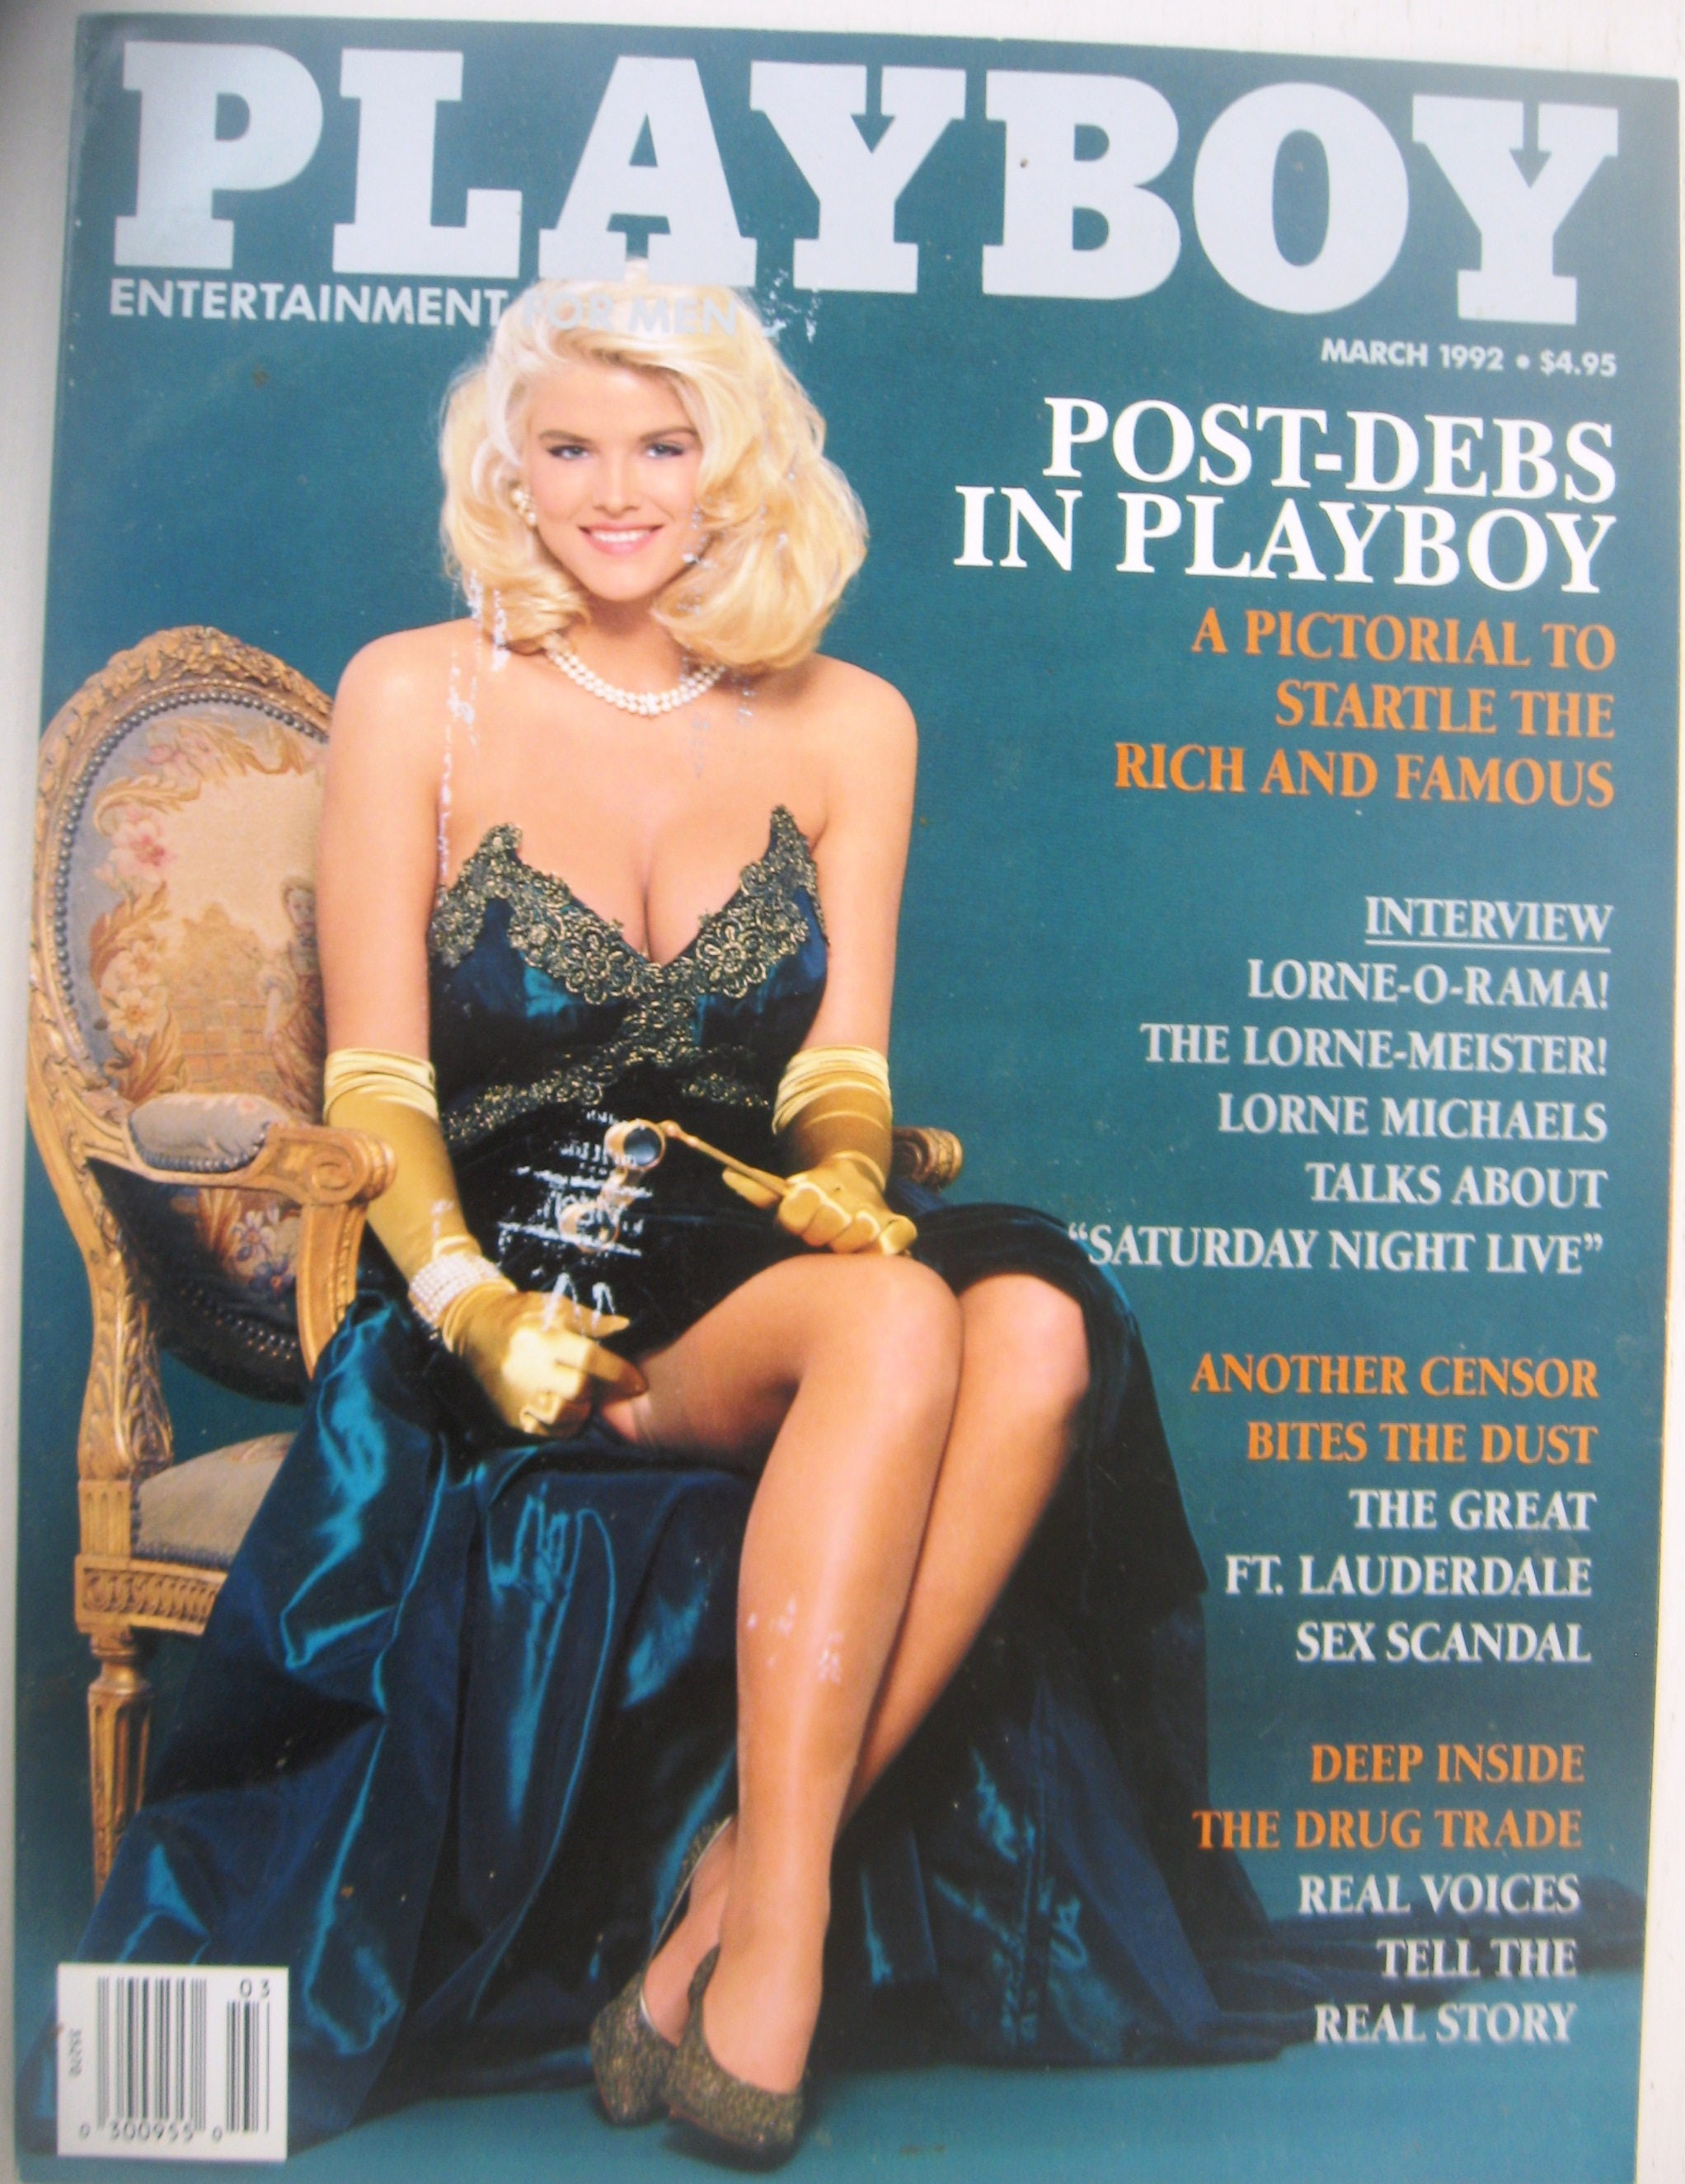 PLAYBOY March 1992 Excellent condition FREE SHIPPING